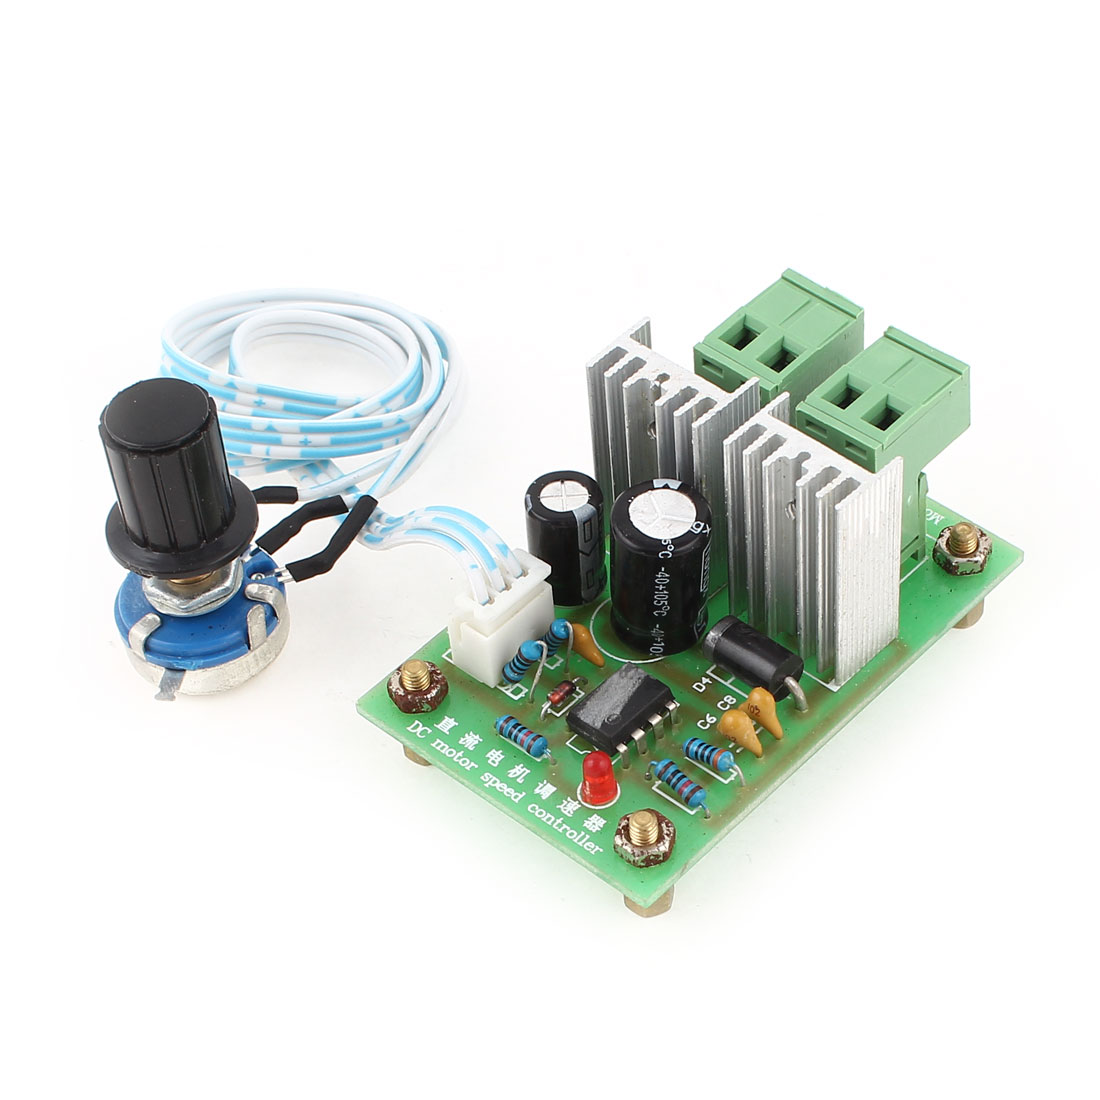 PWM DC Converter Motor Speed Controller Switch Green DC 12-36V 10A